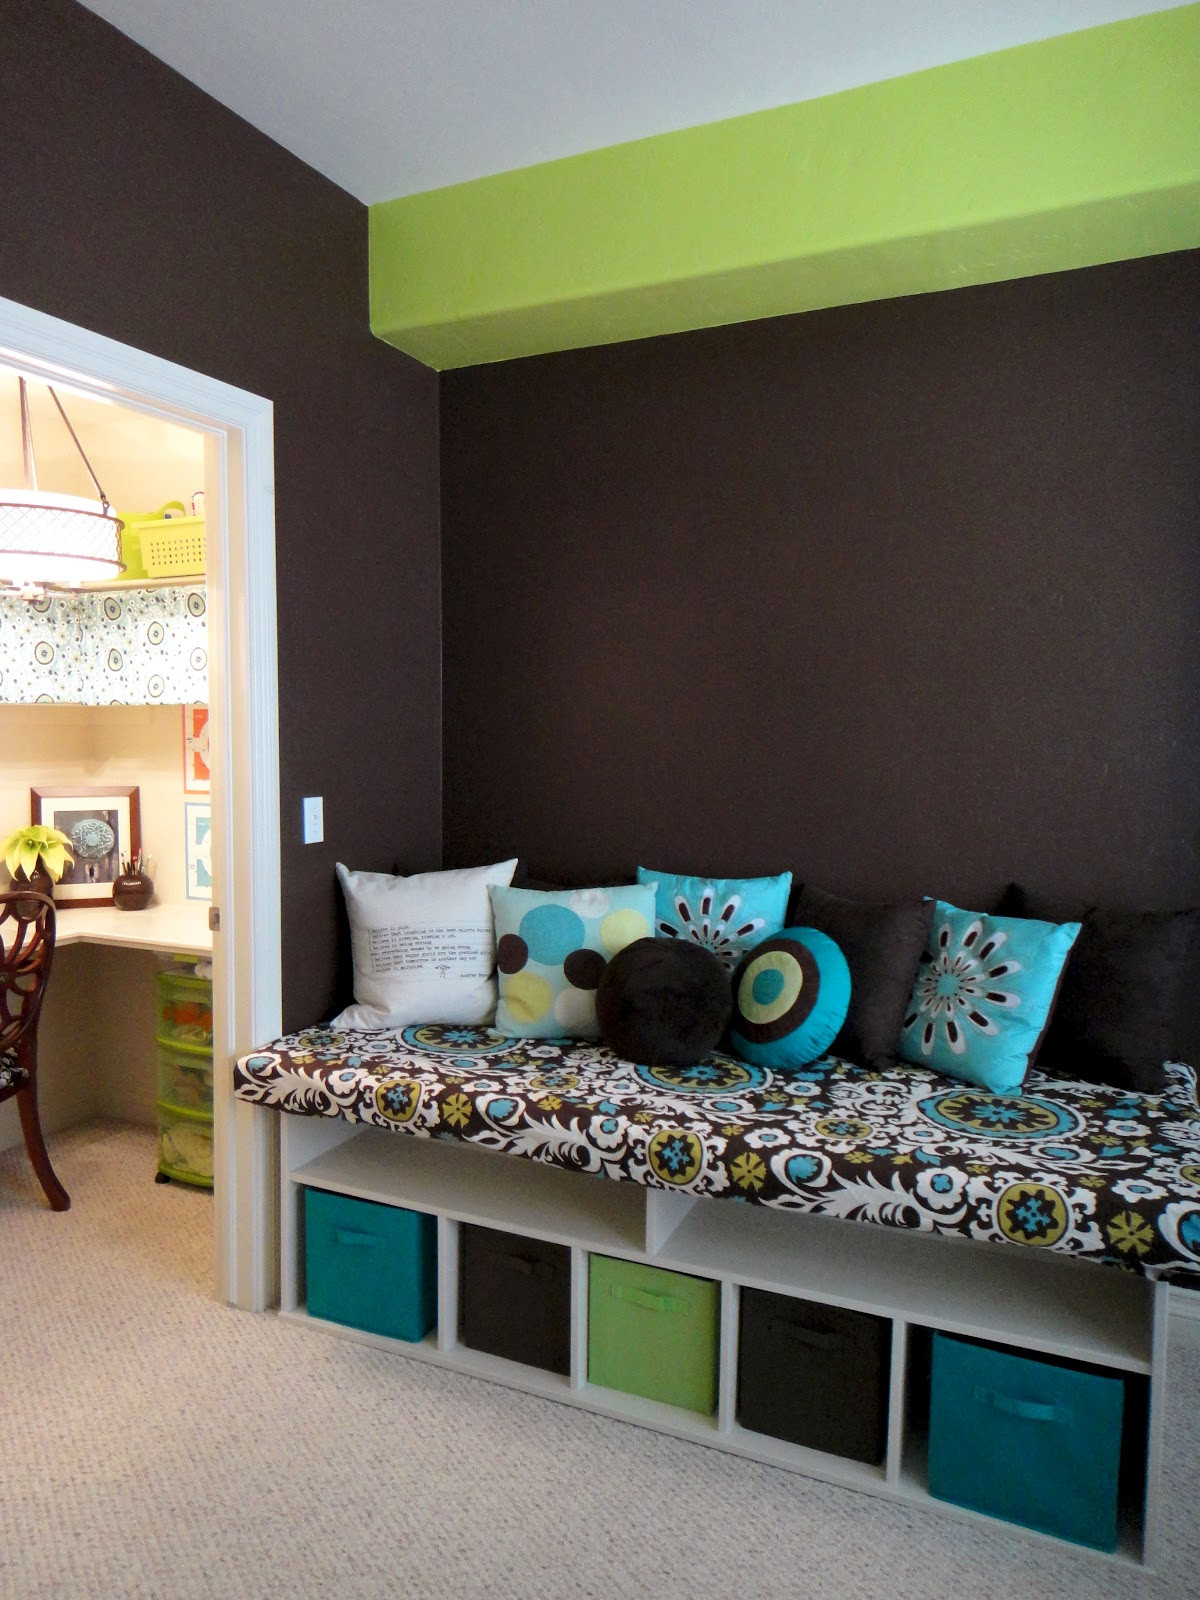 Best ideas about DIY Kids Playroom . Save or Pin Worth Pinning Playroom storage solution Now.